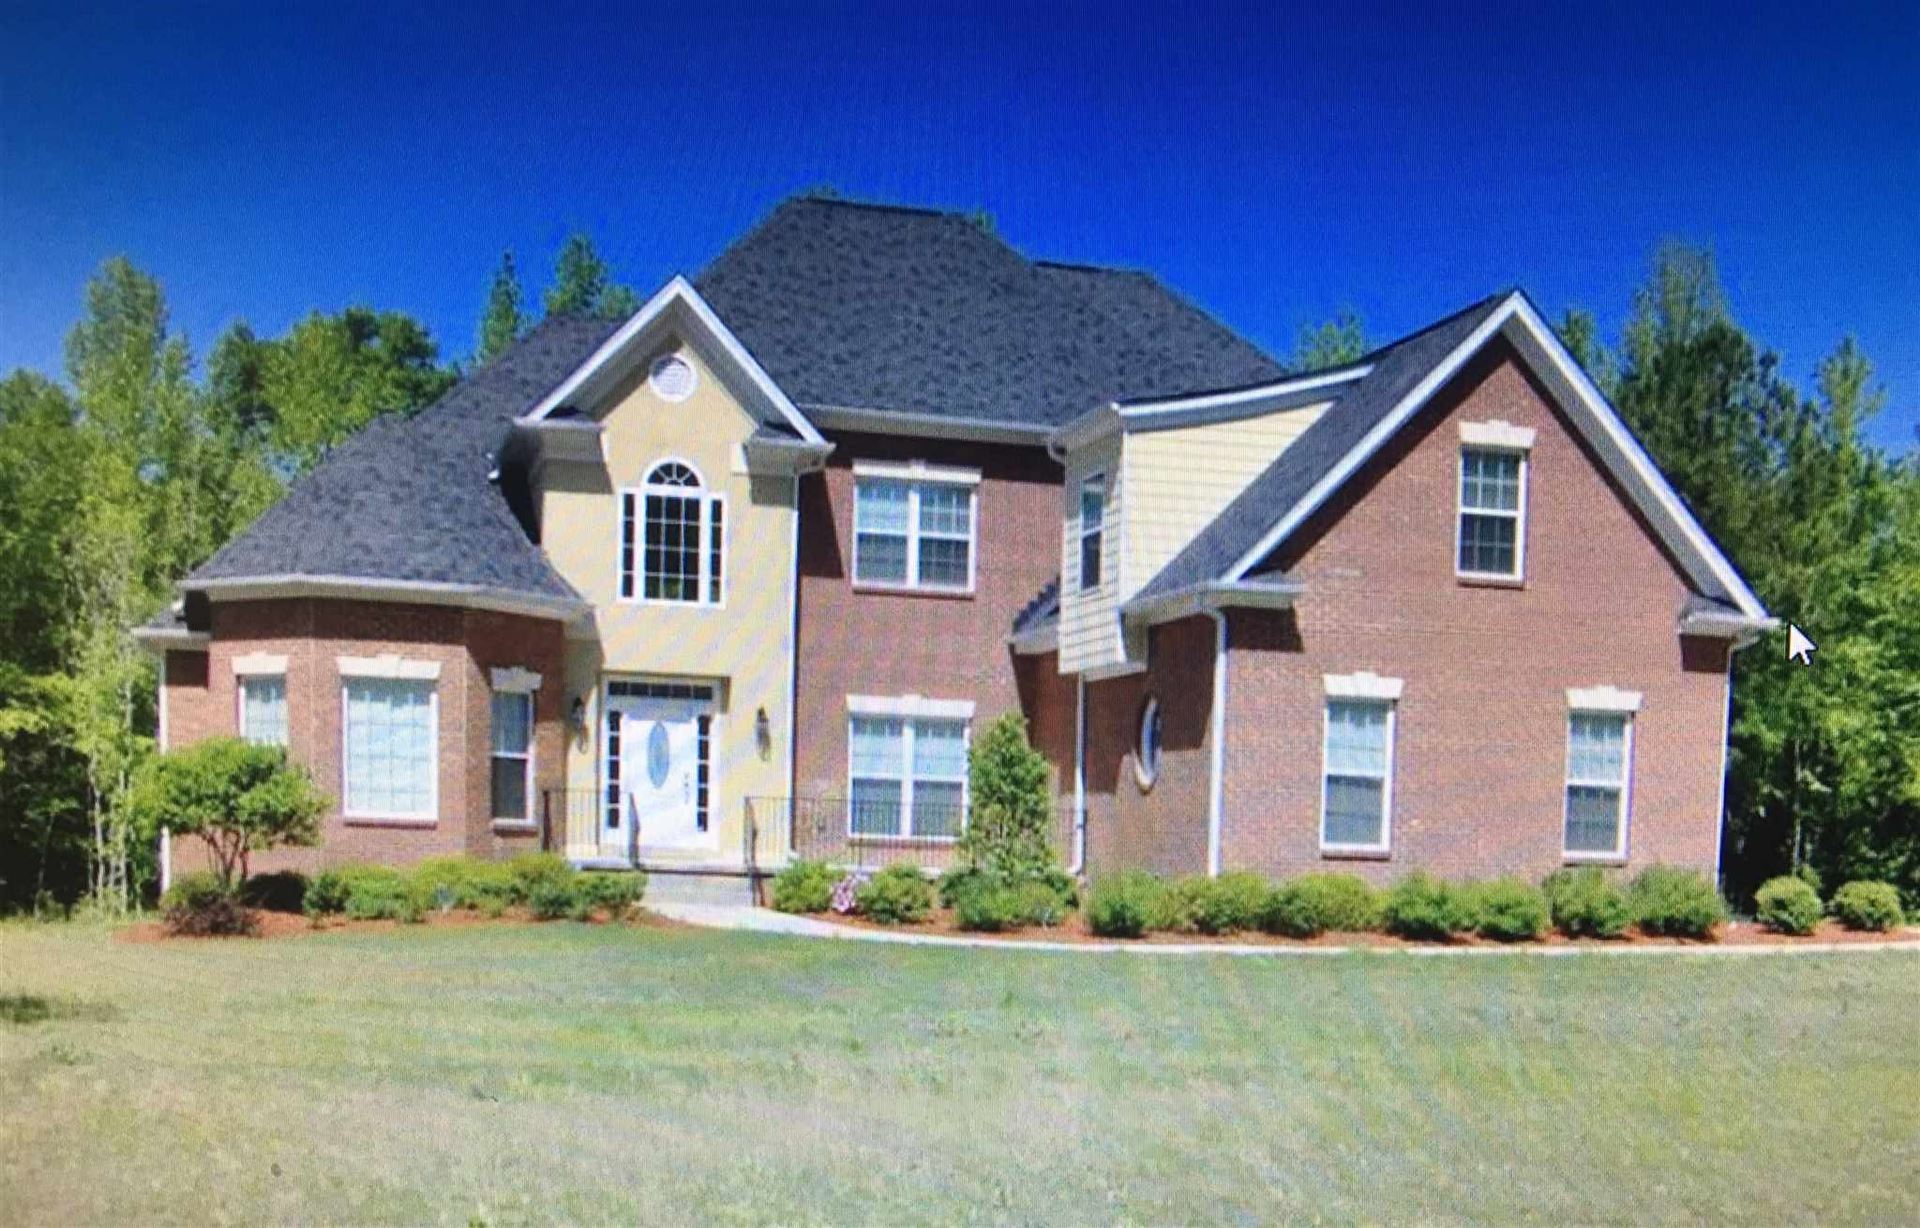 2504 Ella Springs Ct, Covington, GA 30014 - #: 8434882